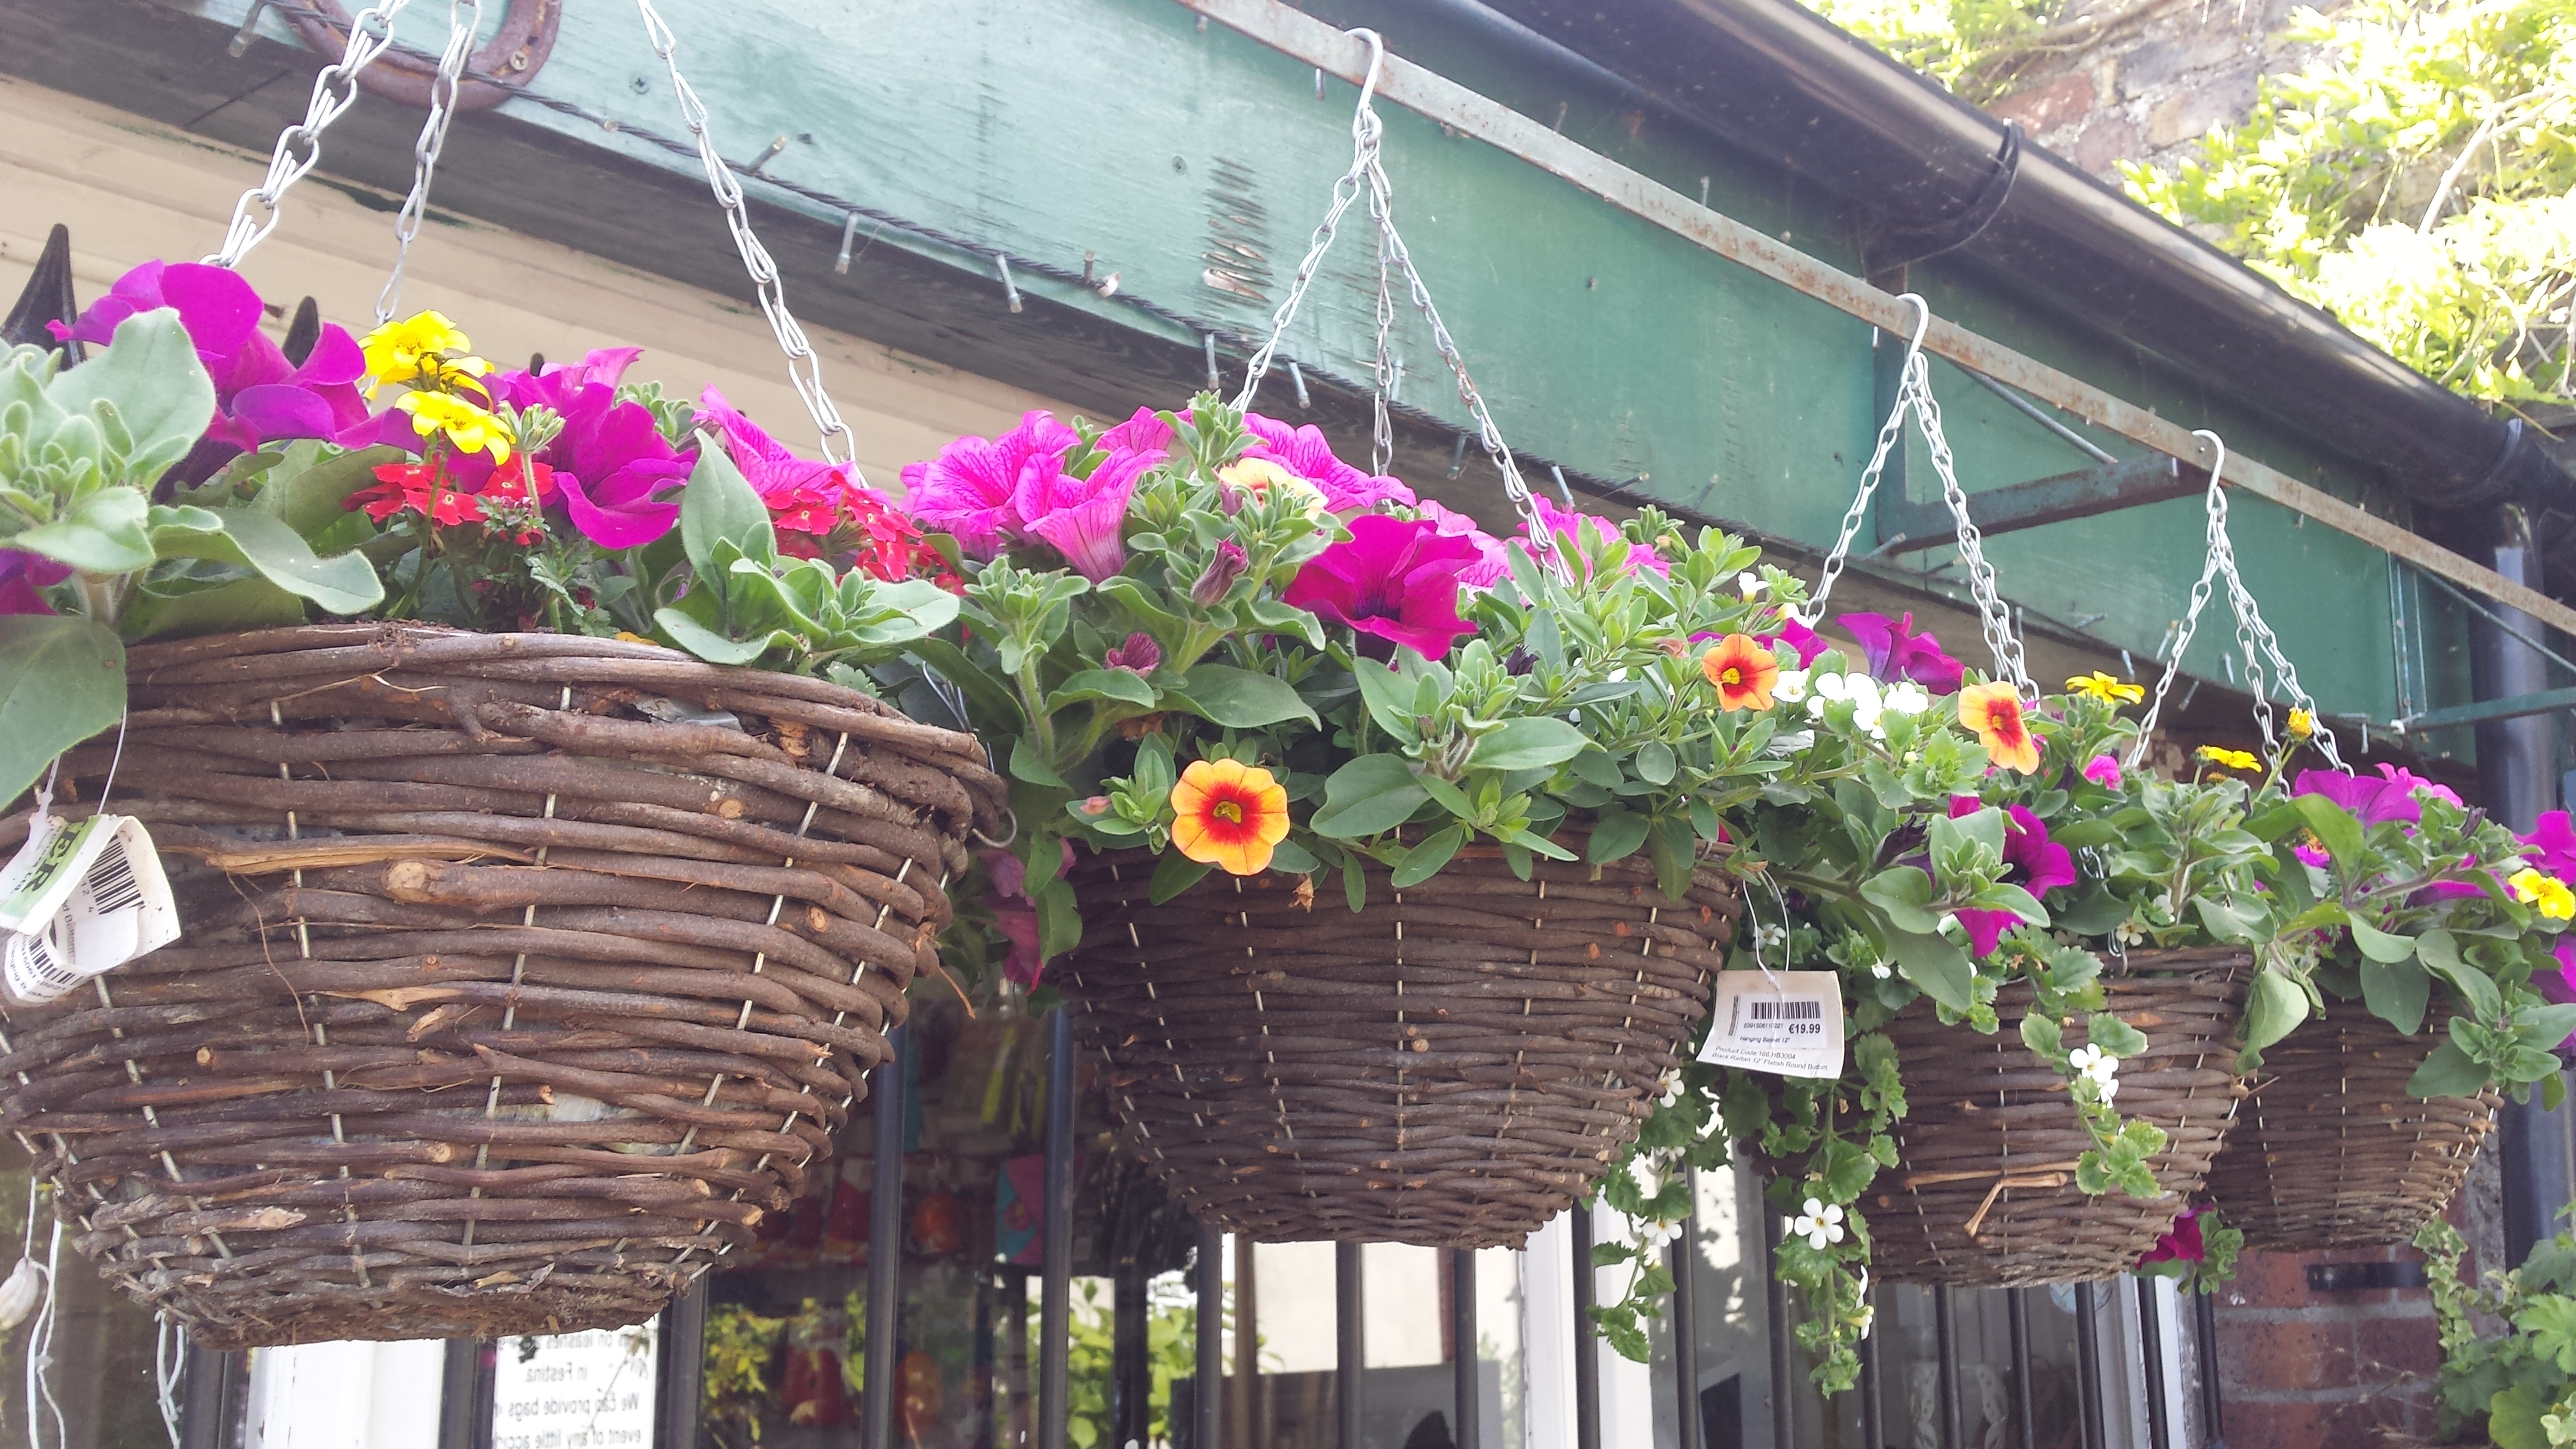 How To Make Round Hanging Flower Baskets : We will plant up your garden hanging baskets containers